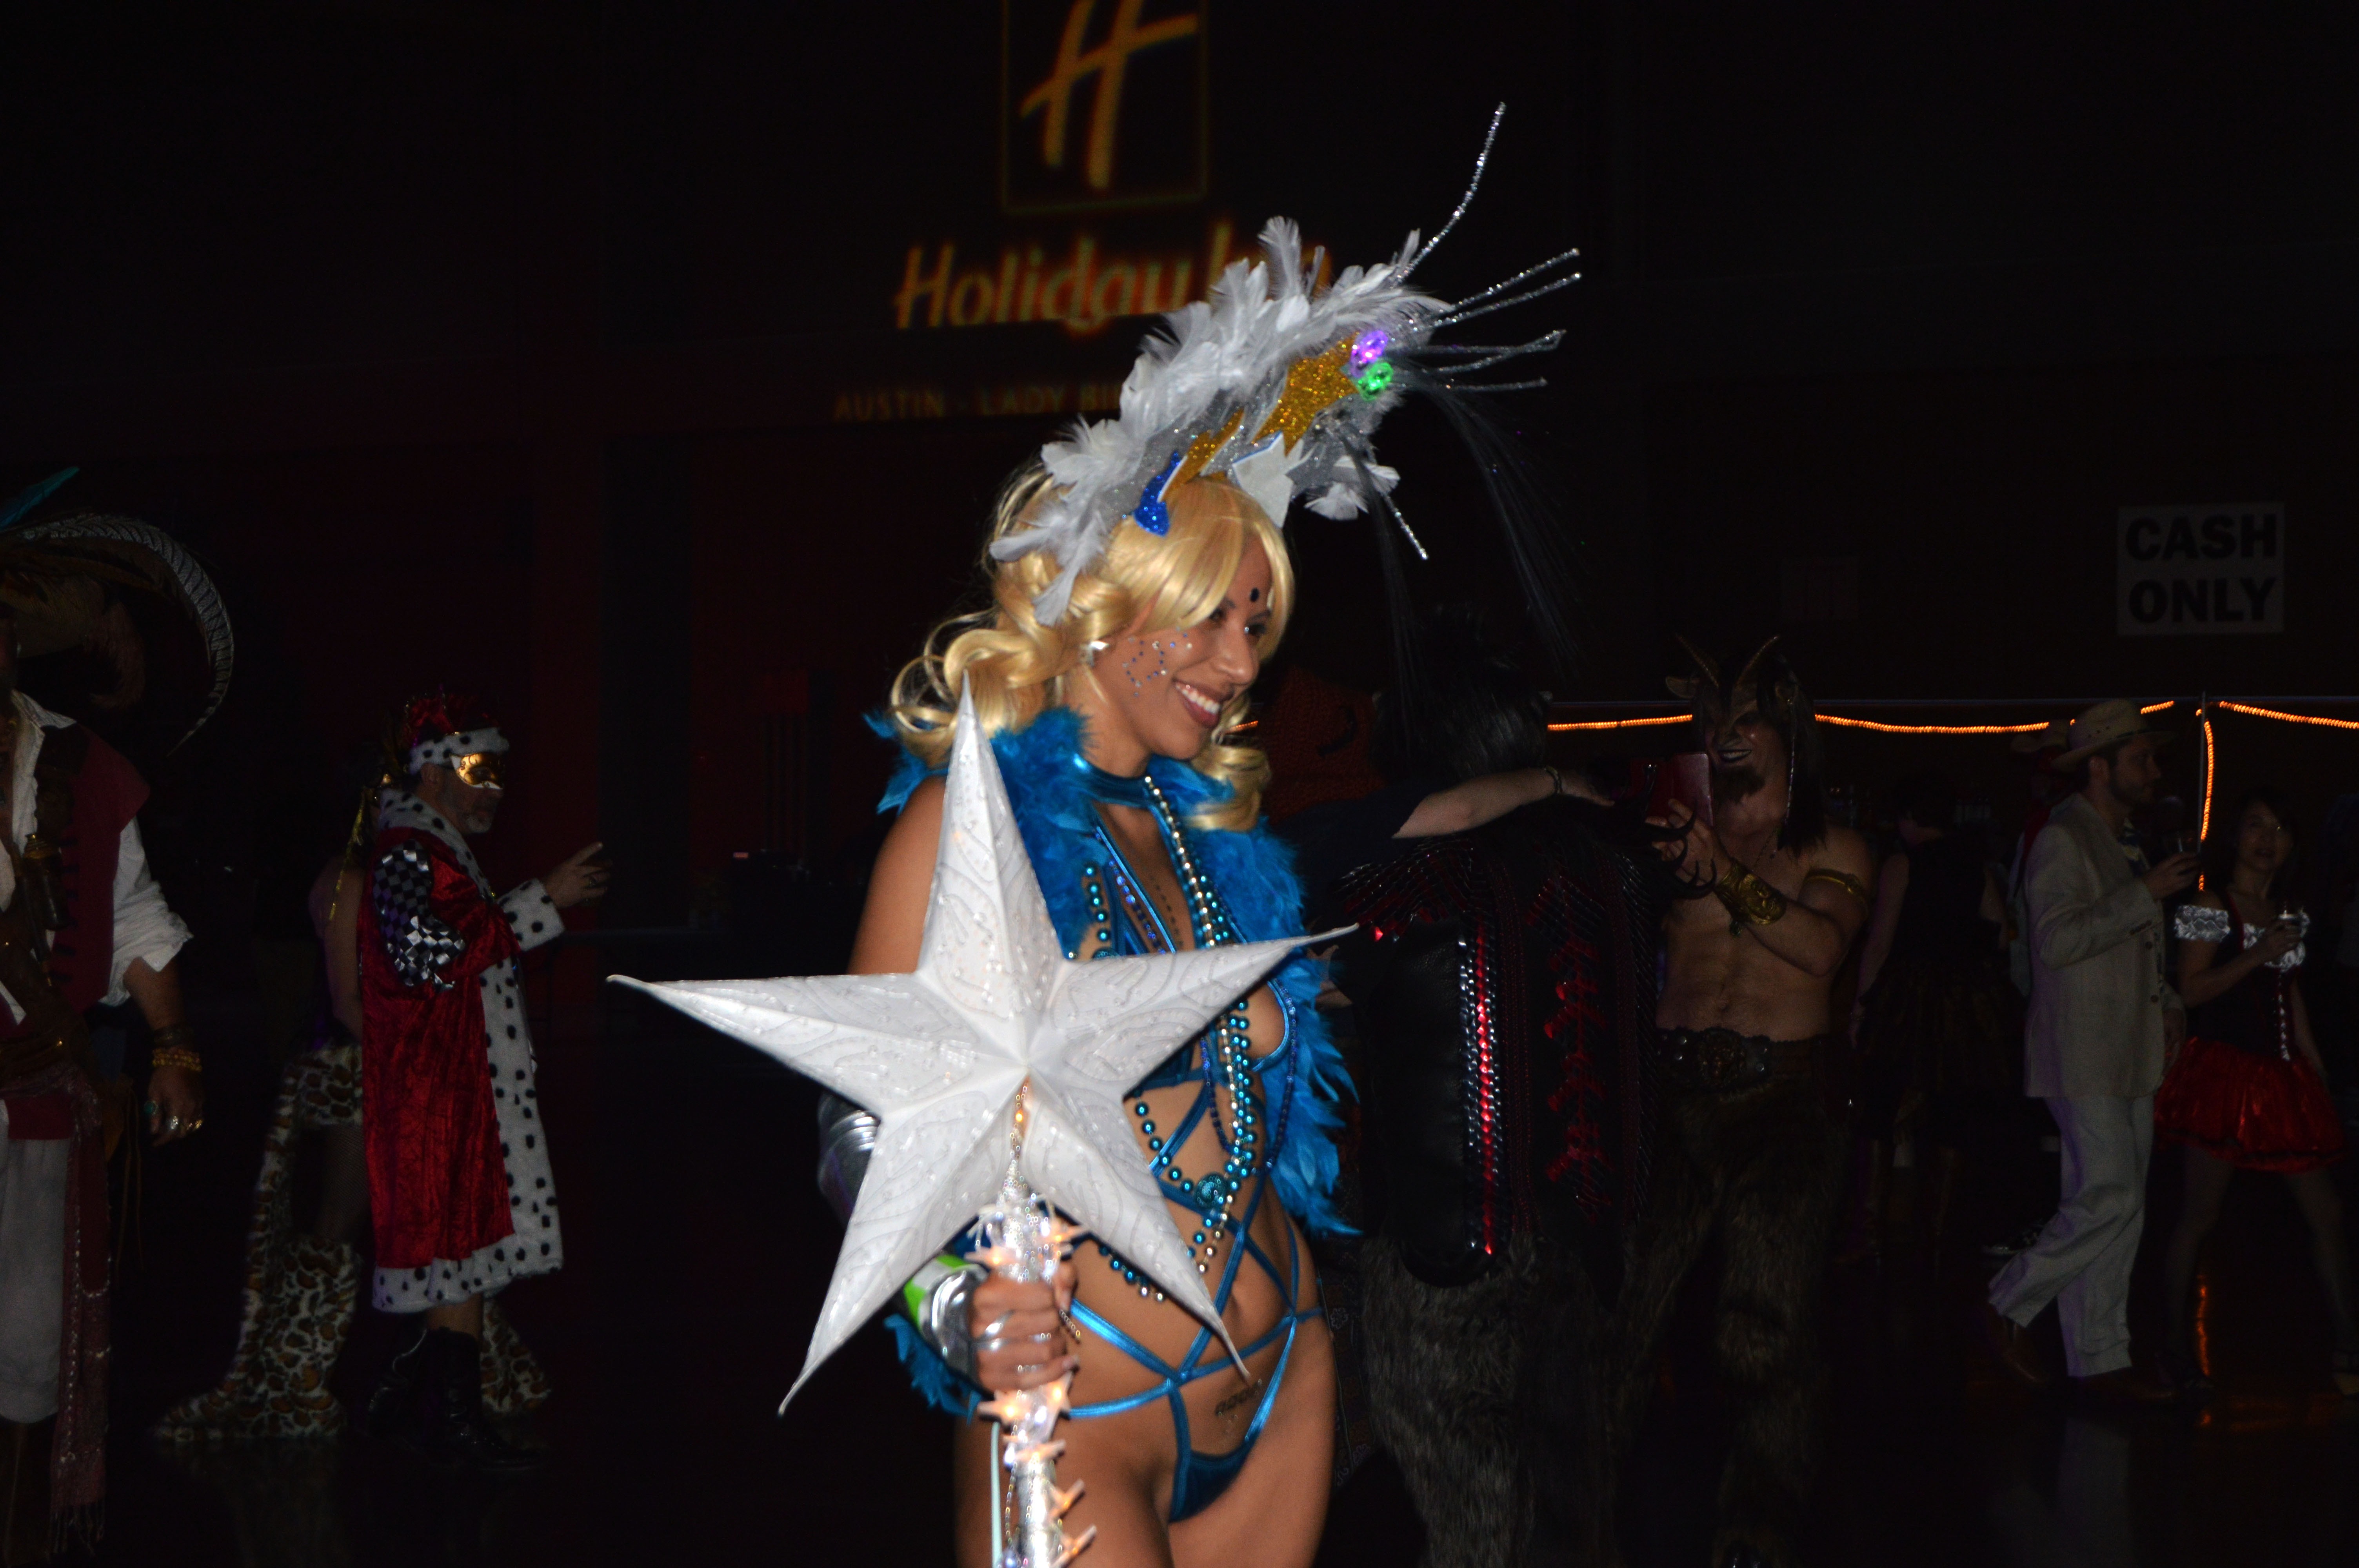 Aubrey Mulberg was scantily-clad in her Carnaval costume. This is one of her favorite events of the year and she loves to go all-out for it.